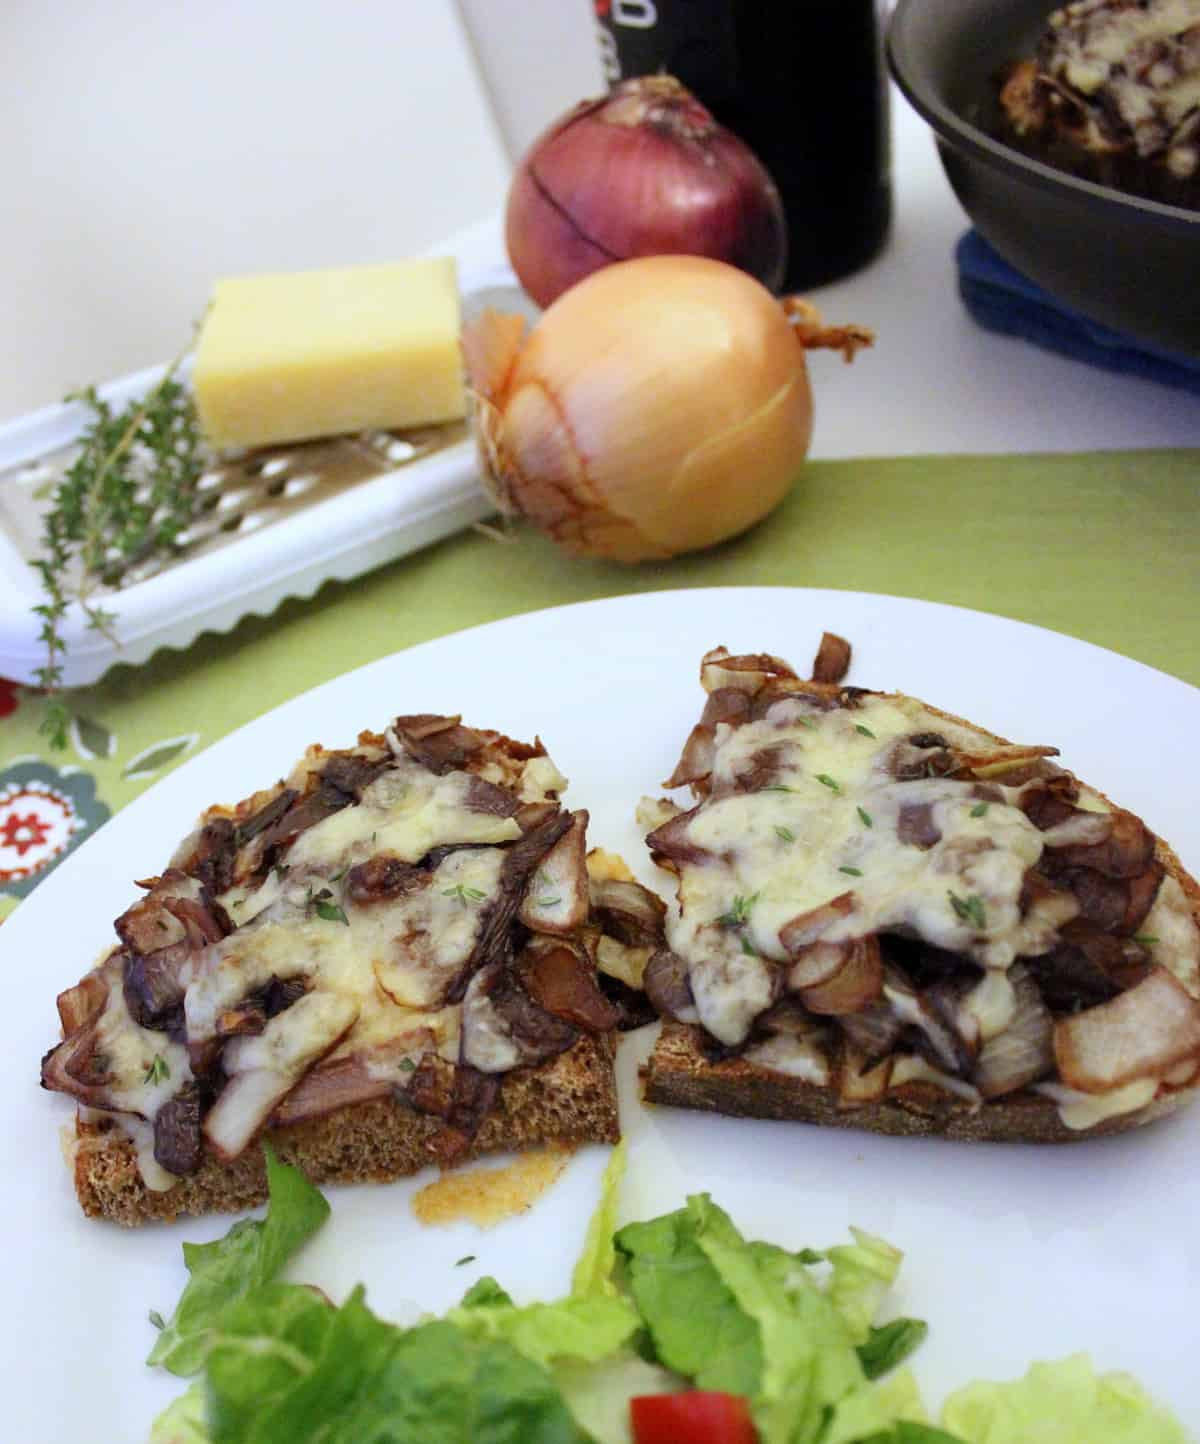 Caramelized Onion and Gruyere Grilled Cheese from Living Well Kitchen